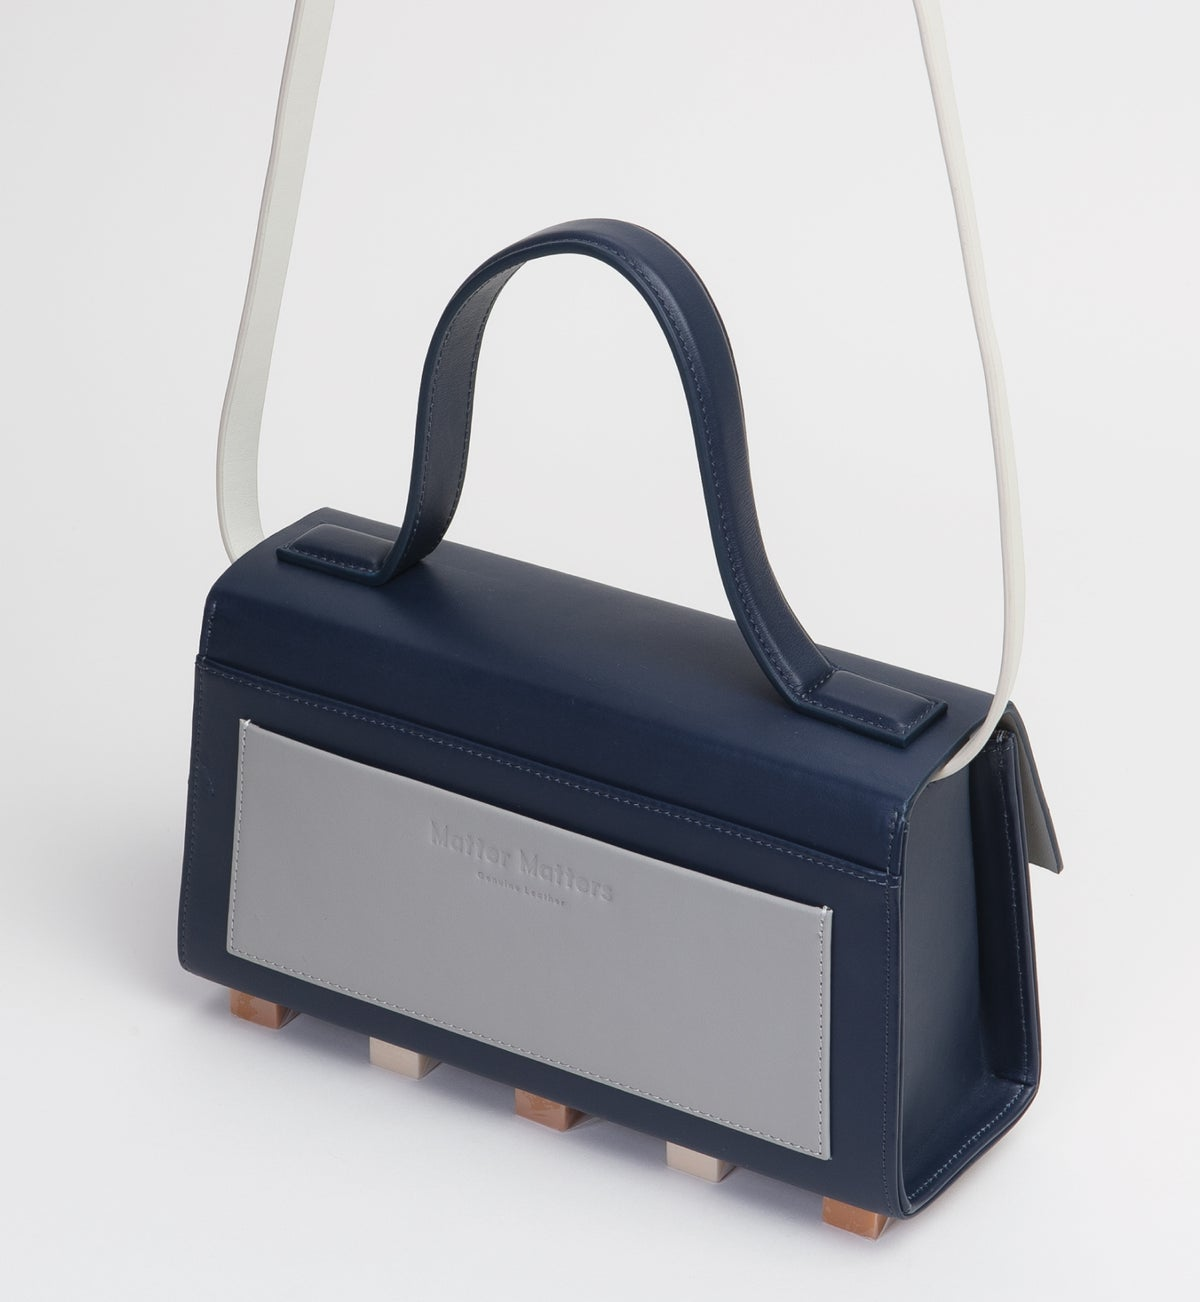 Image of Mini Trapezoid satchel bag • Navy with strap